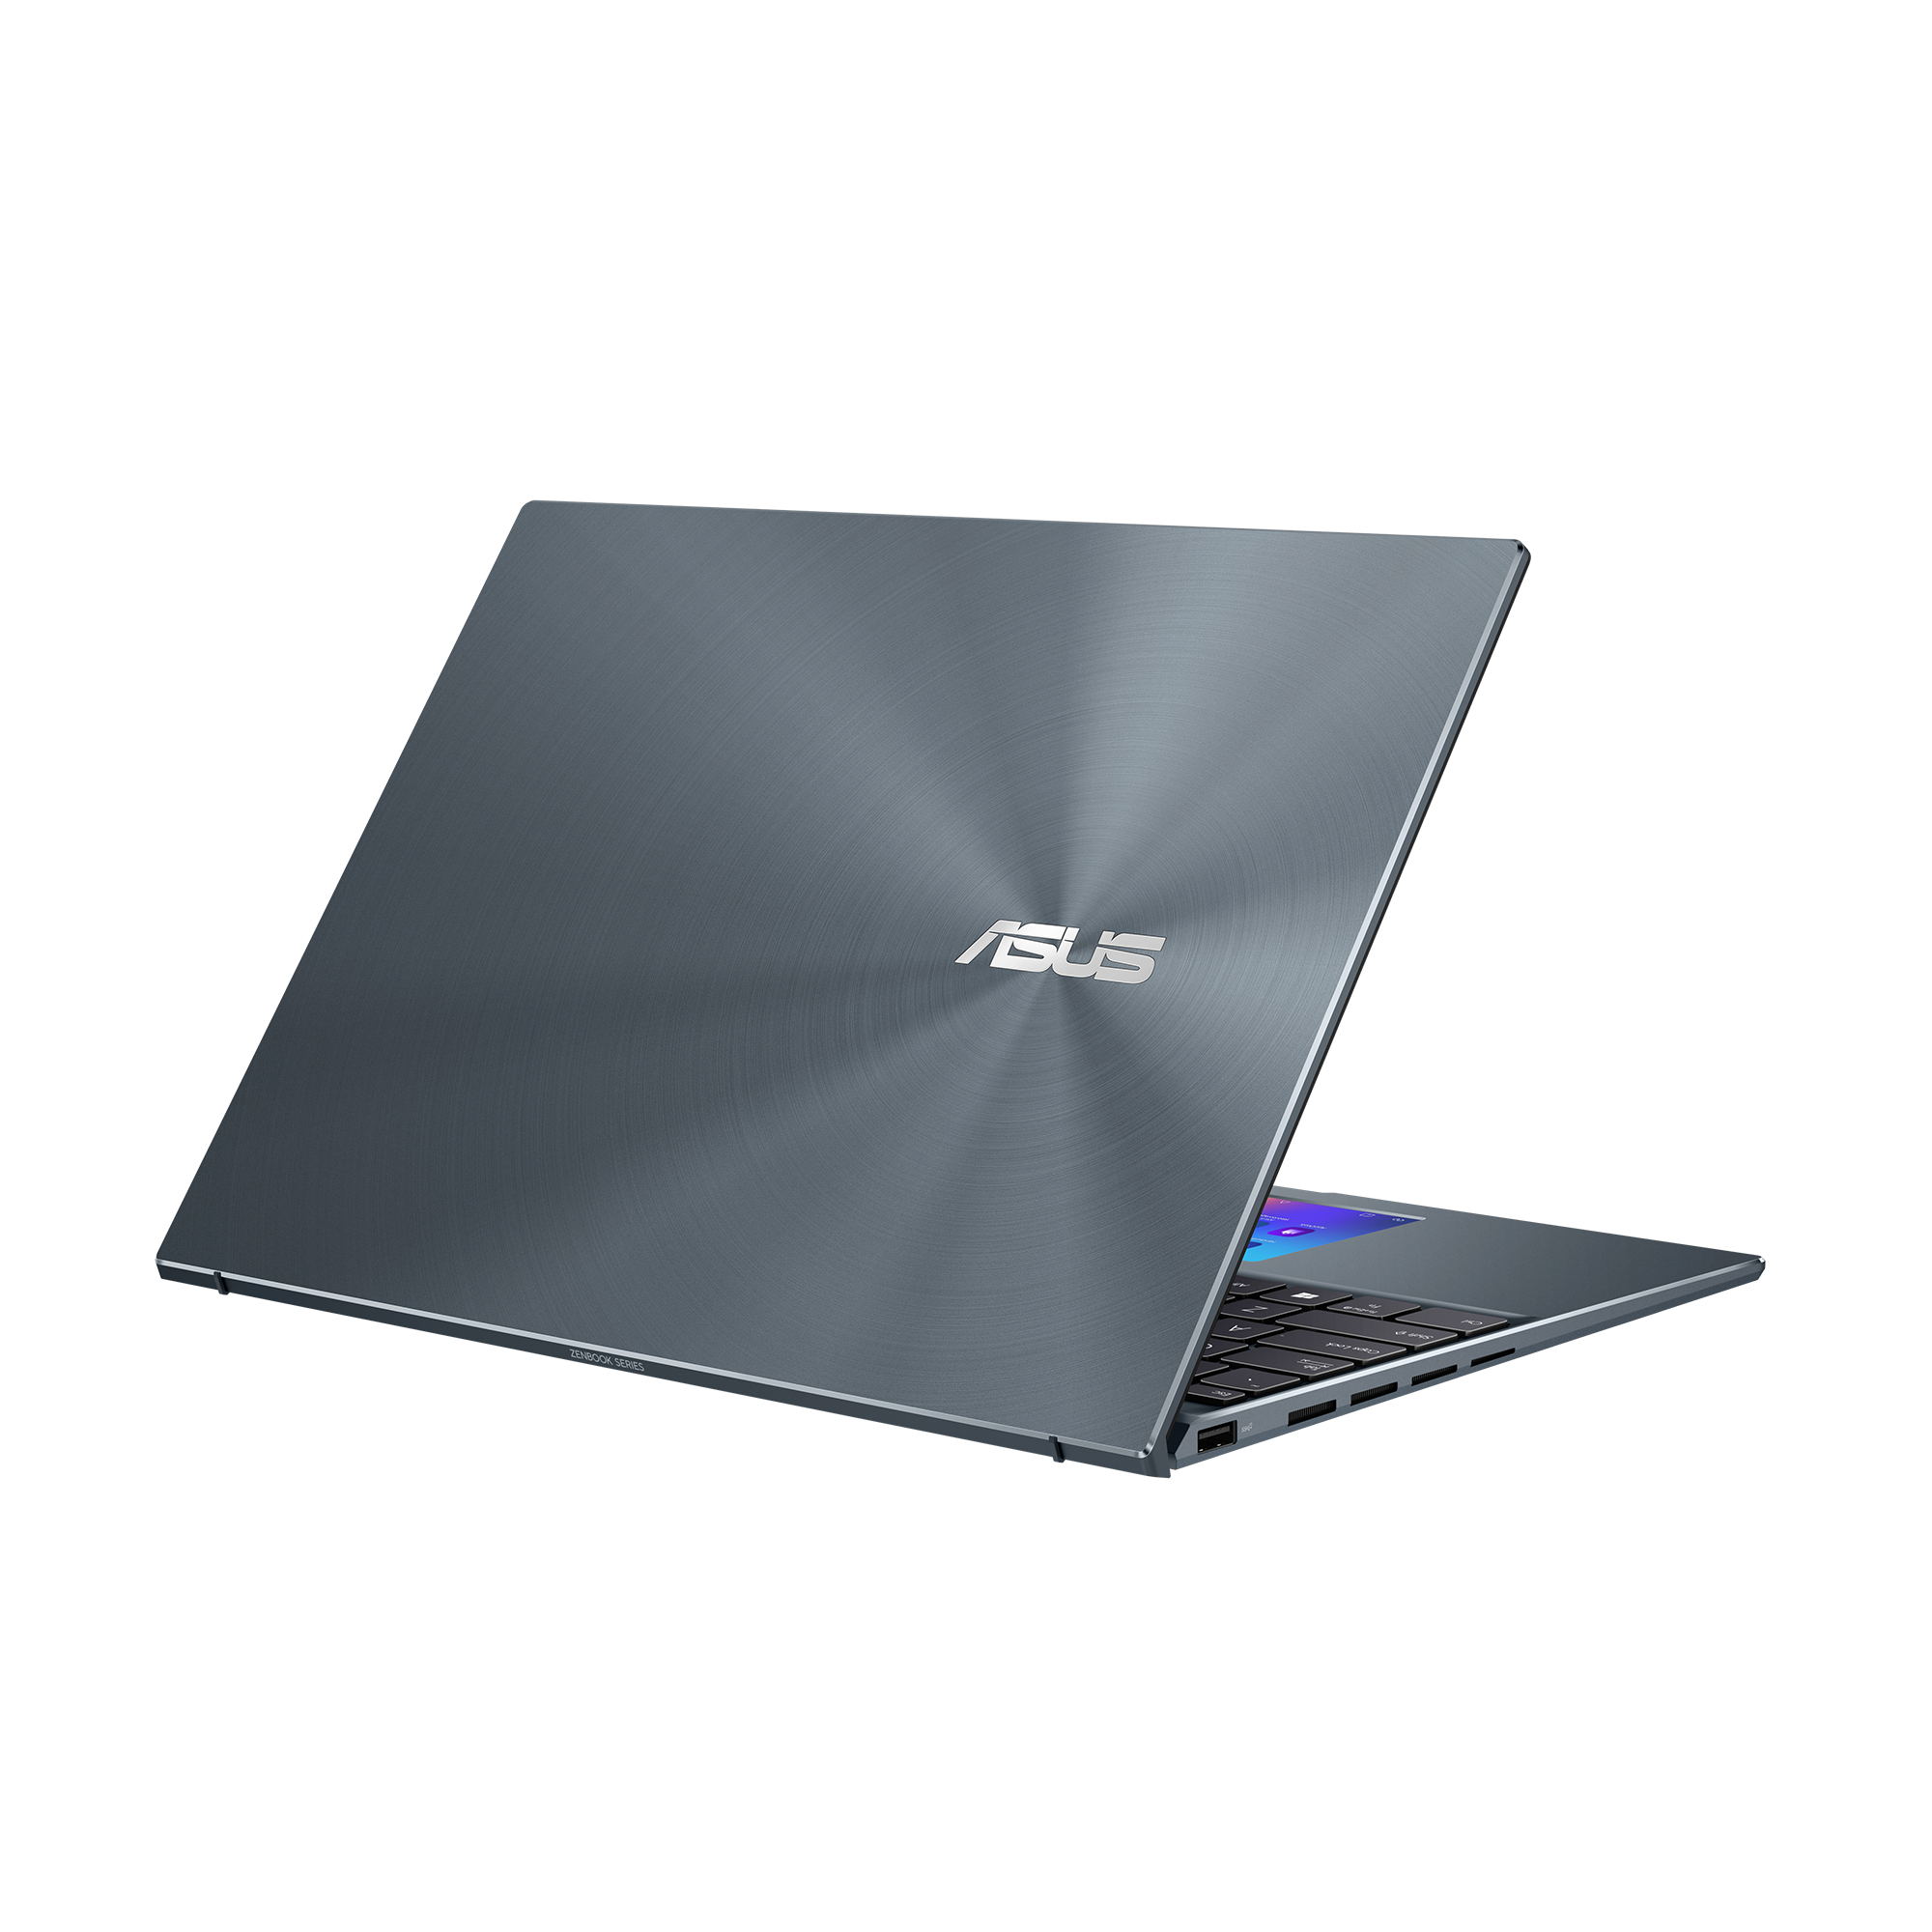 The Asus Zenbook 14X facing away from the camera, angled to the right, half open, on a white background.